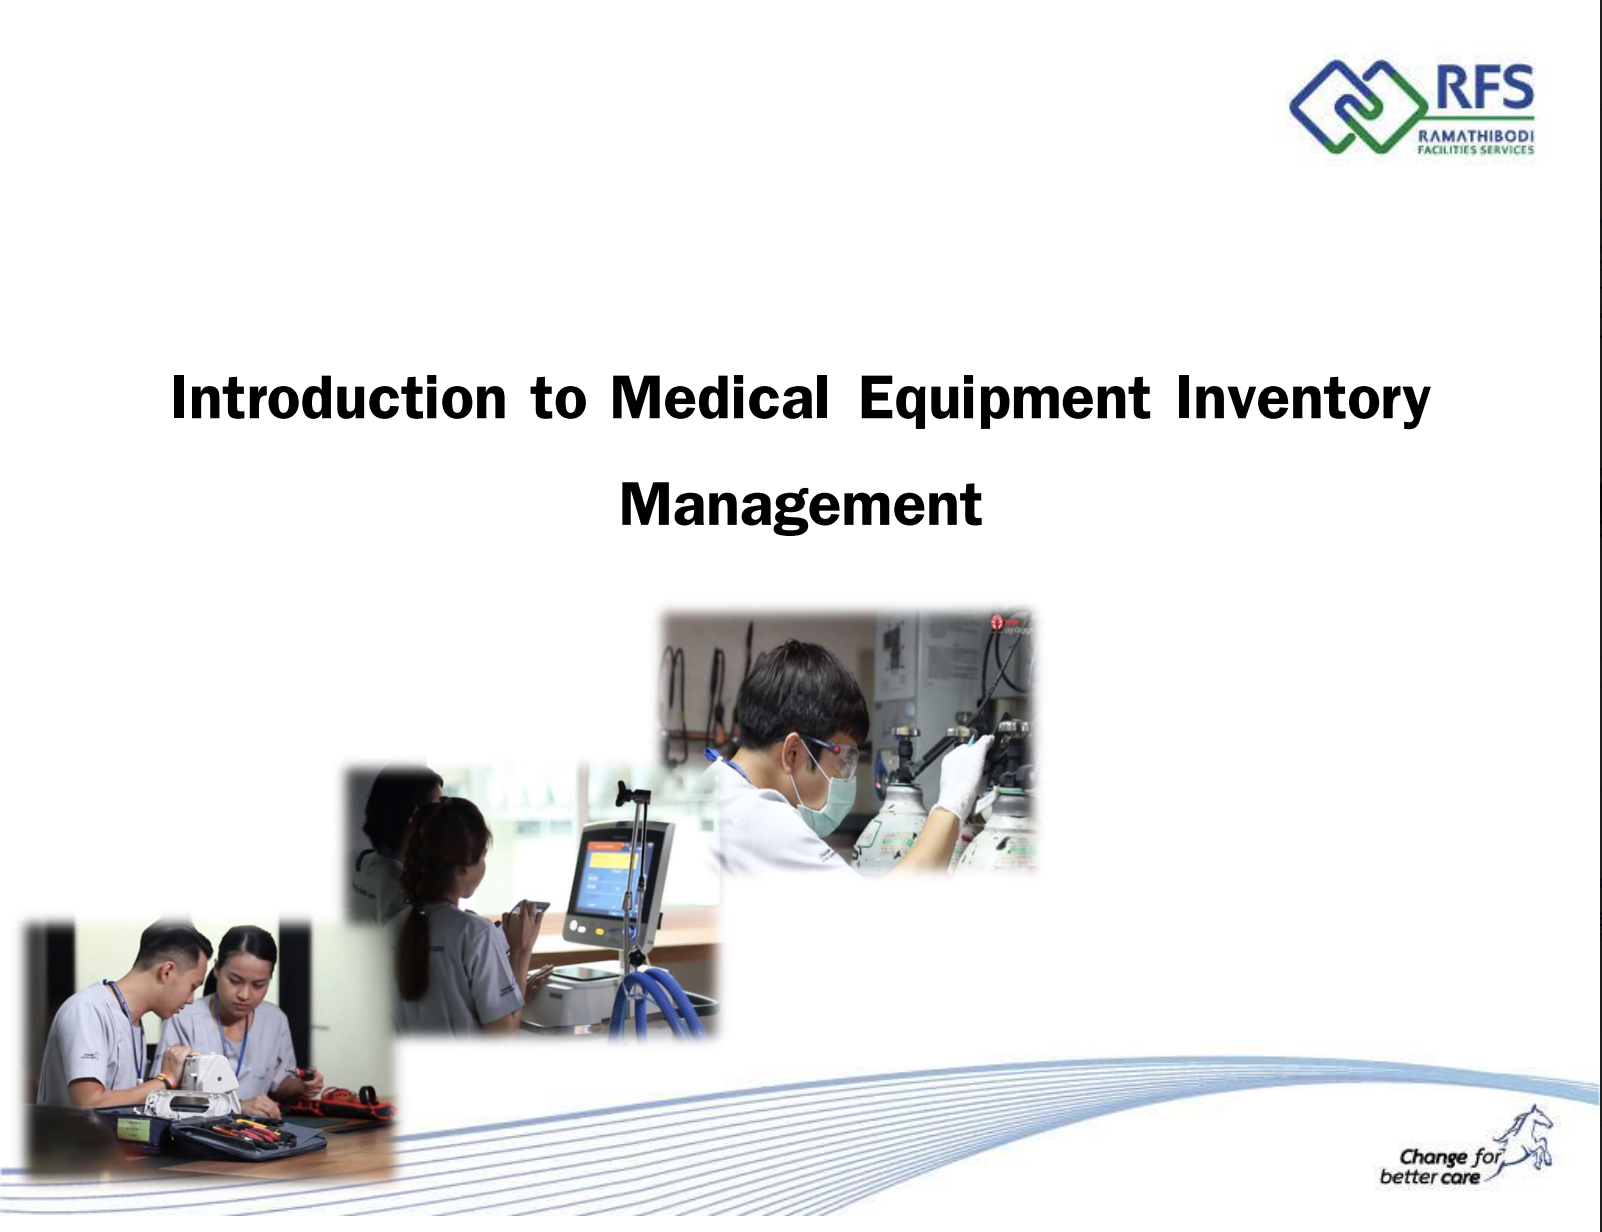 Introduction to Medical Equipment Inventory Management